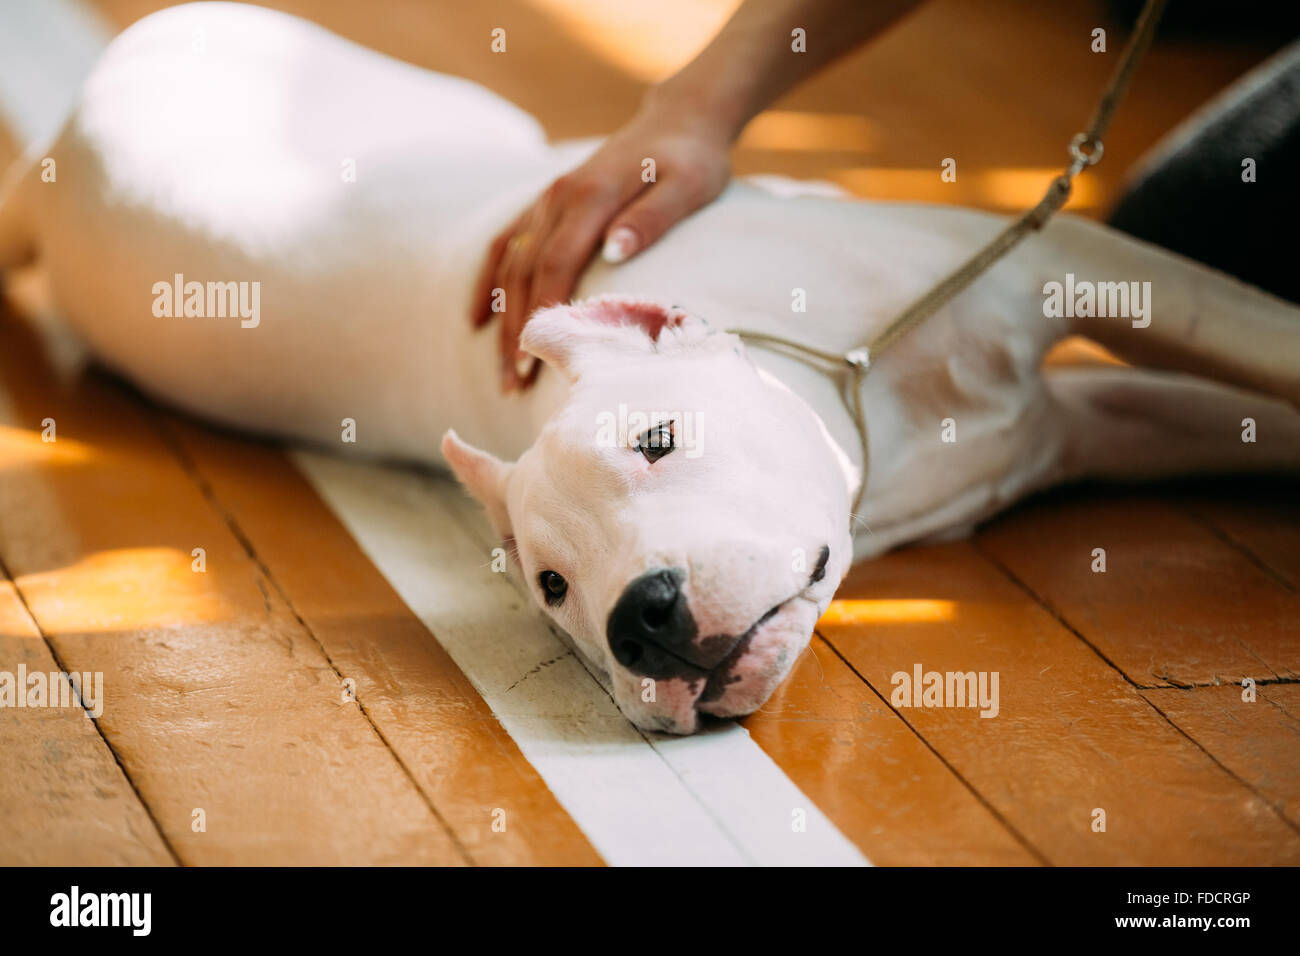 The Dogo Argentino also known as the Argentine Mastiff is a large, white, muscular dog that was developed in Argentina - Stock Image